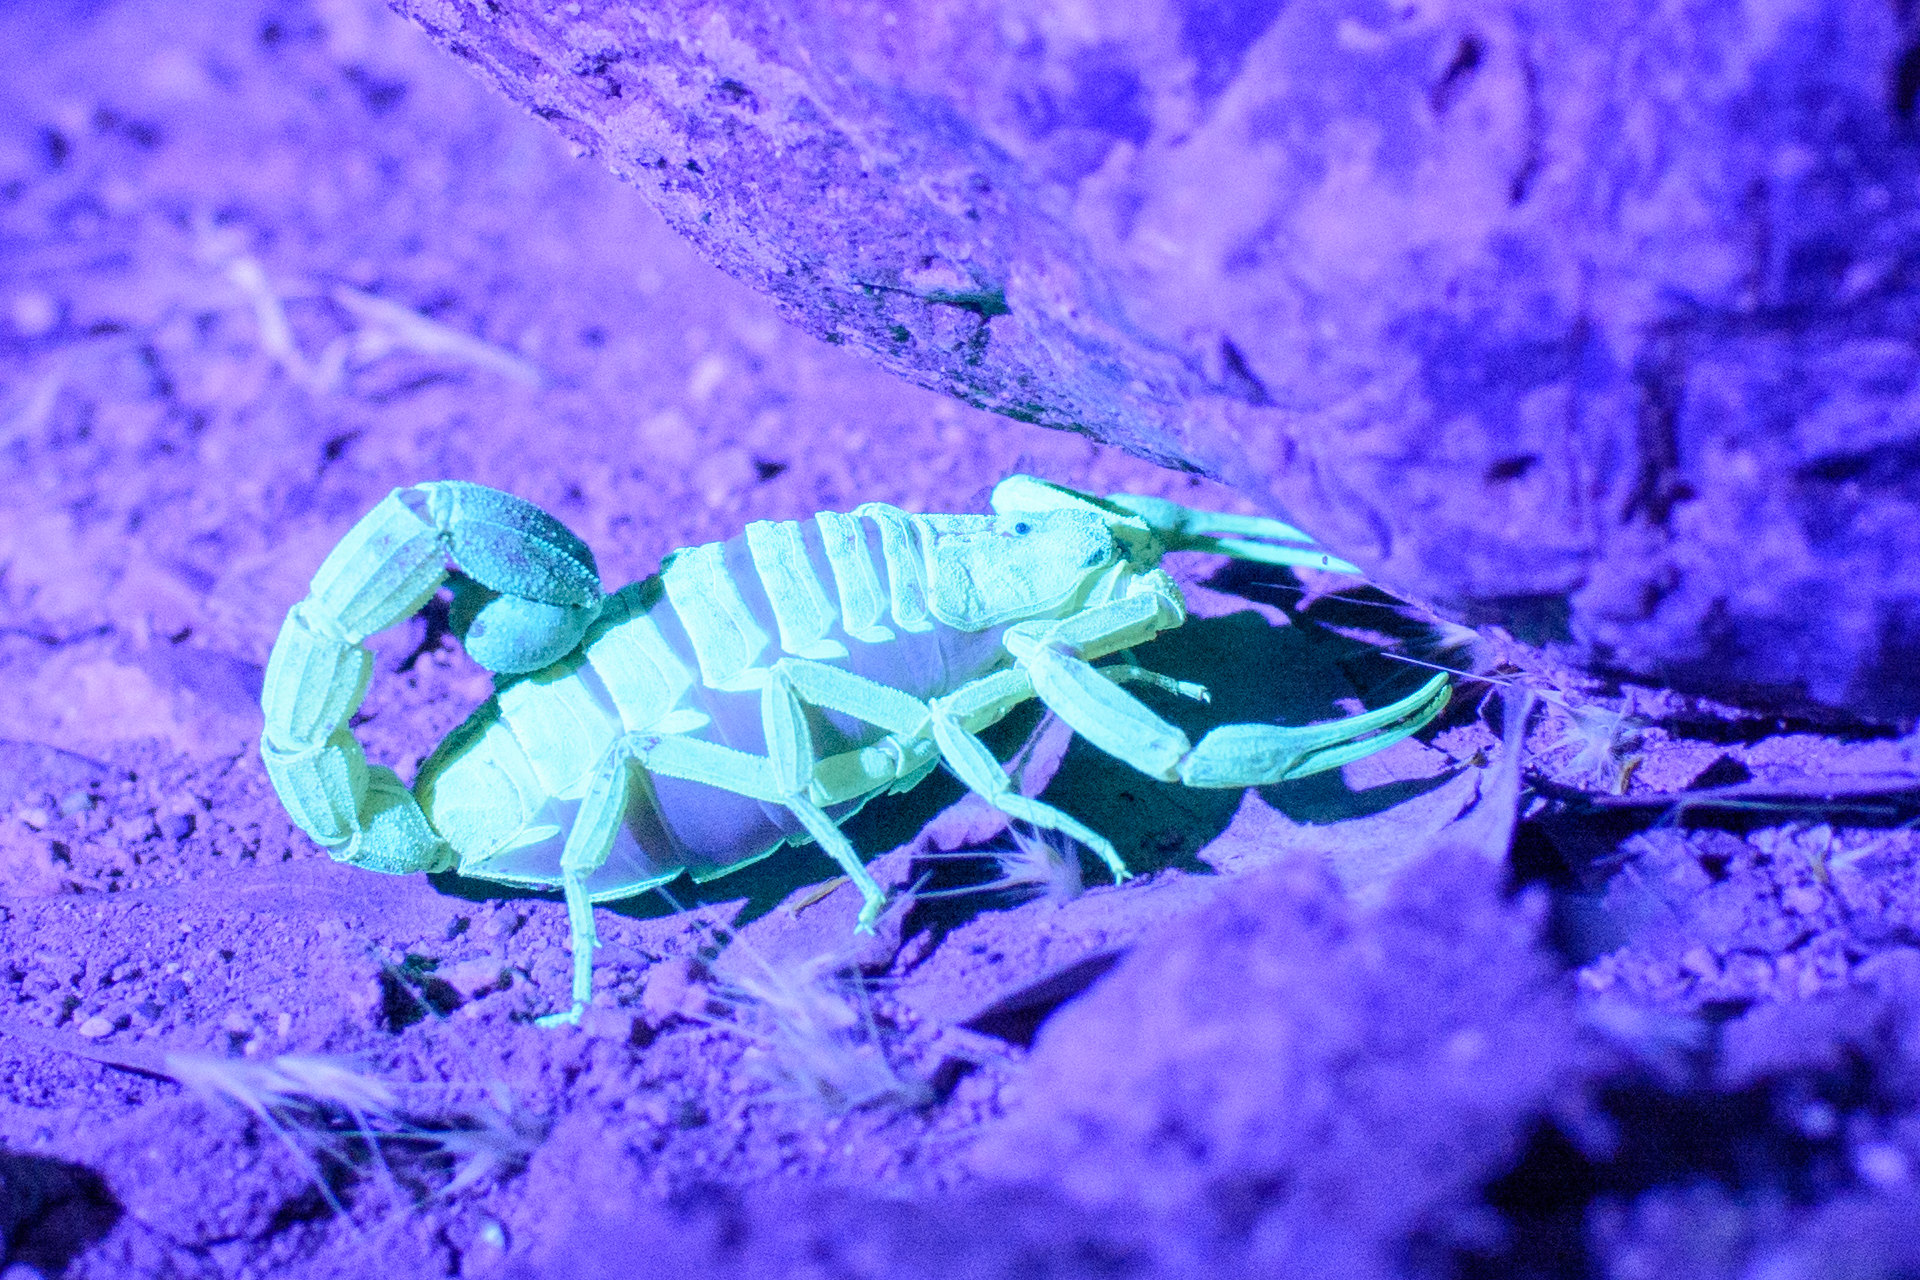 Scorpion, photo credit Alex Derr